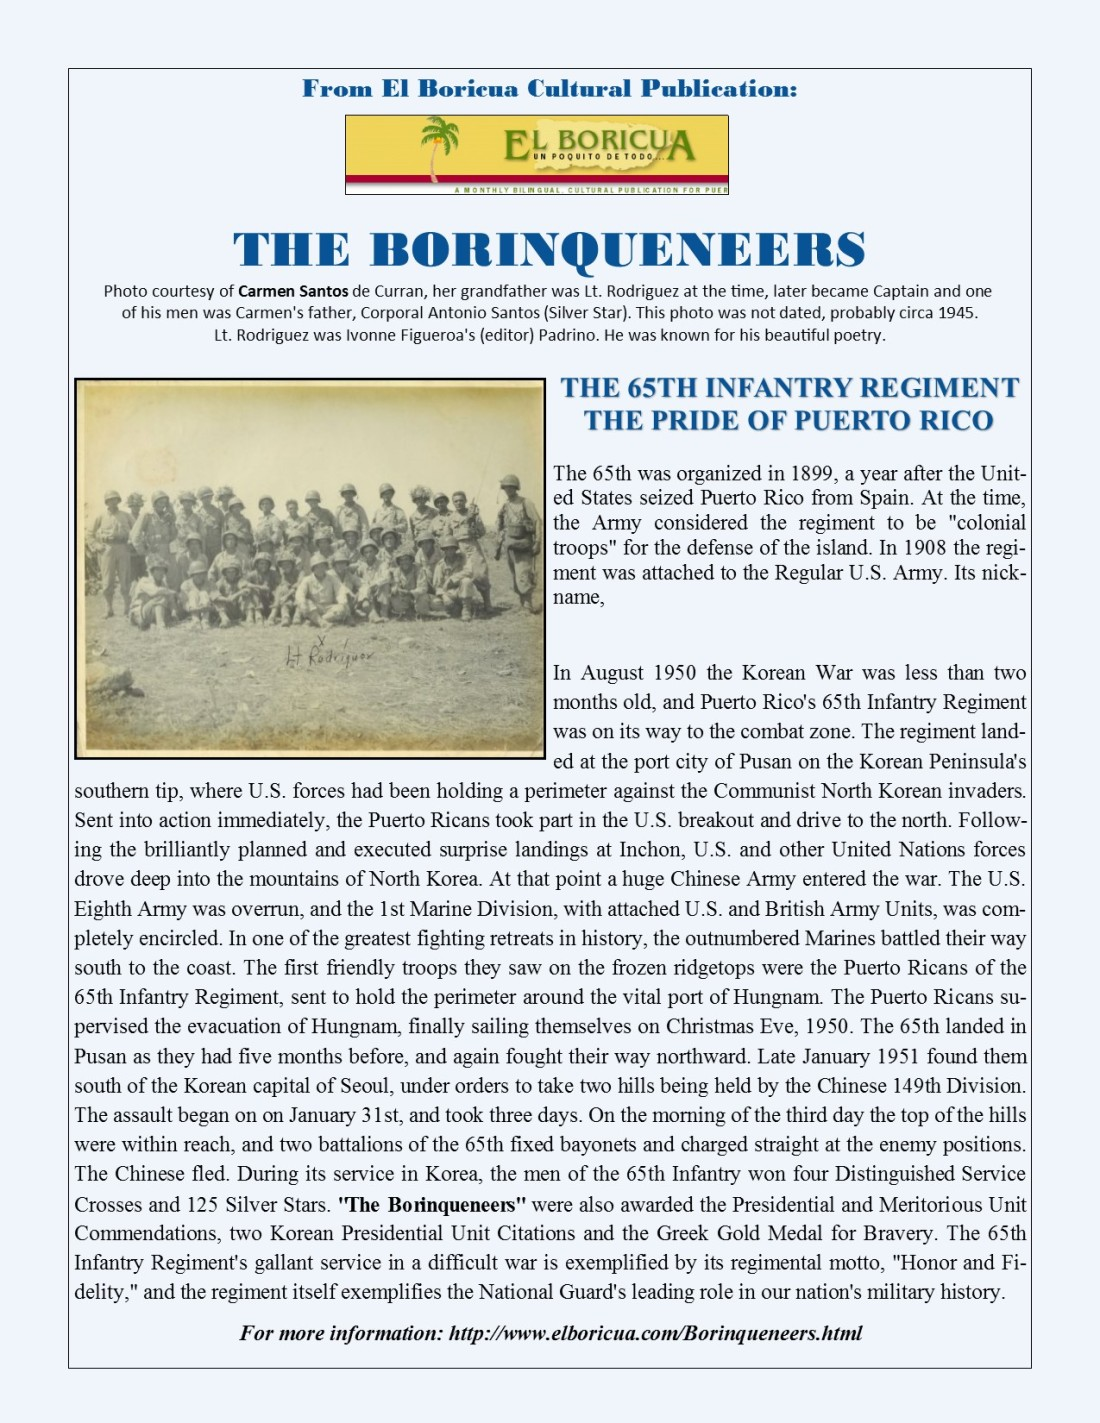 The Boriqueneers